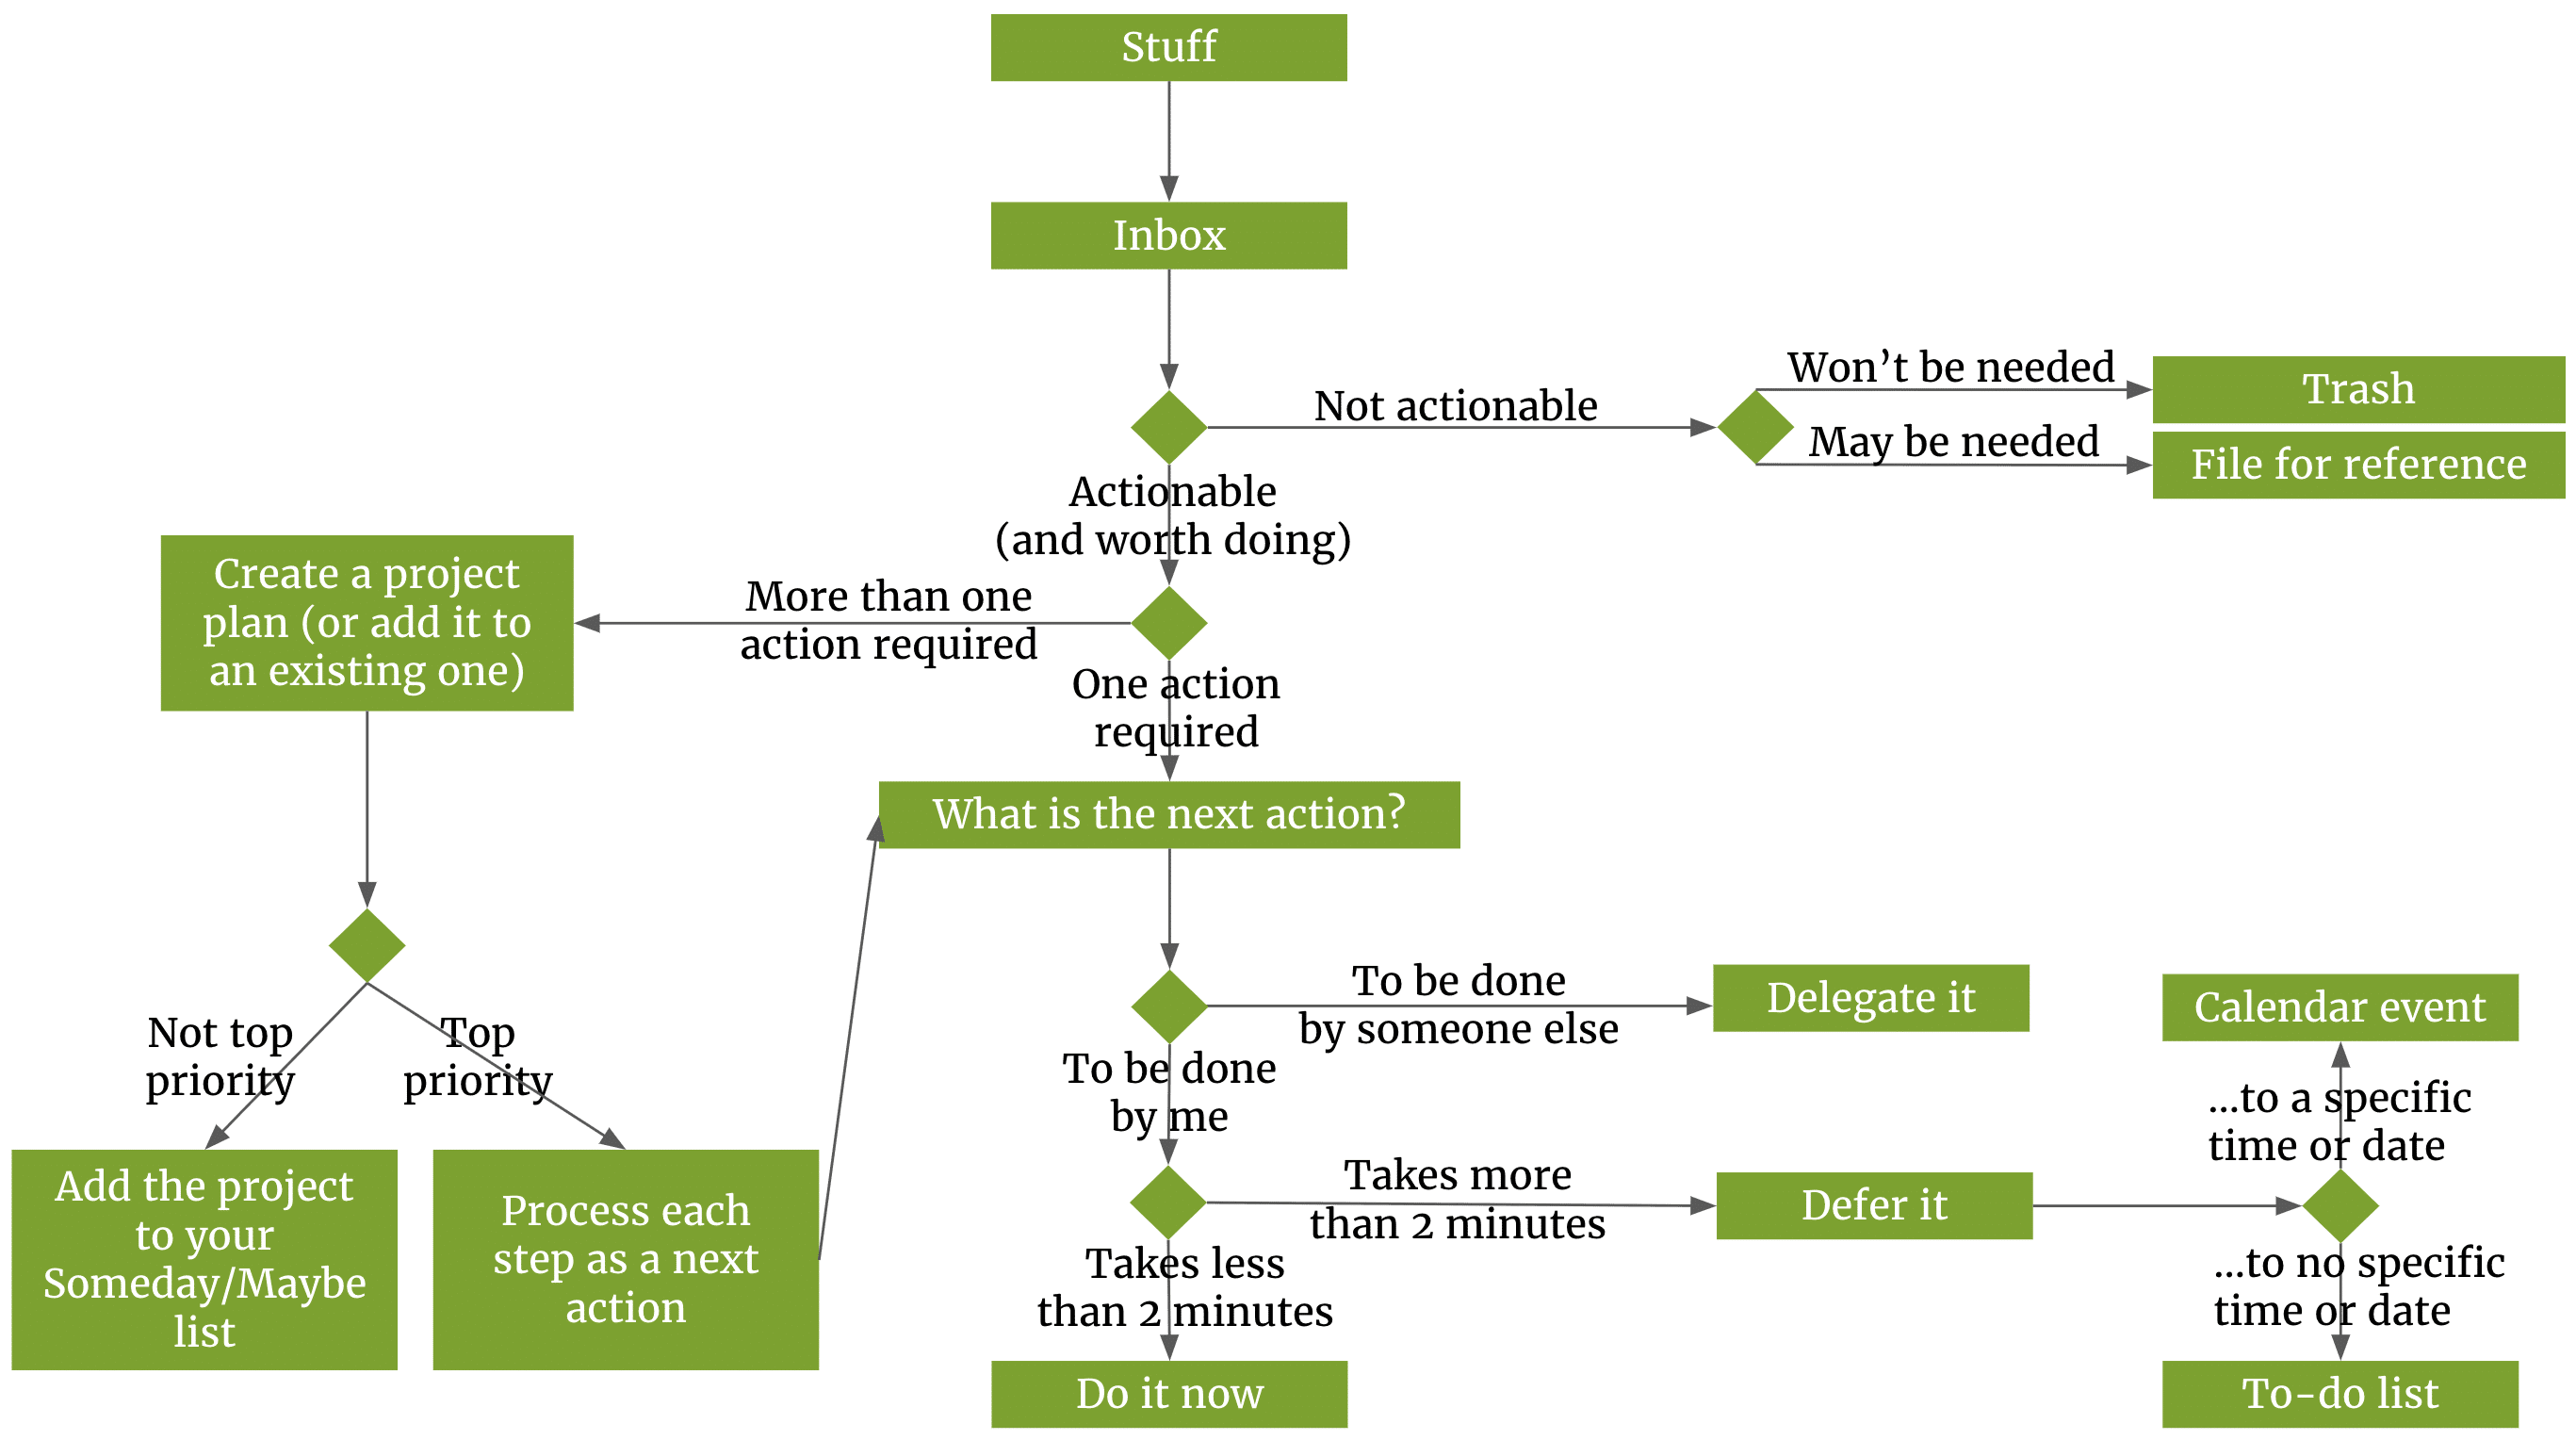 Flowchart diagram of the Getting Things Done process